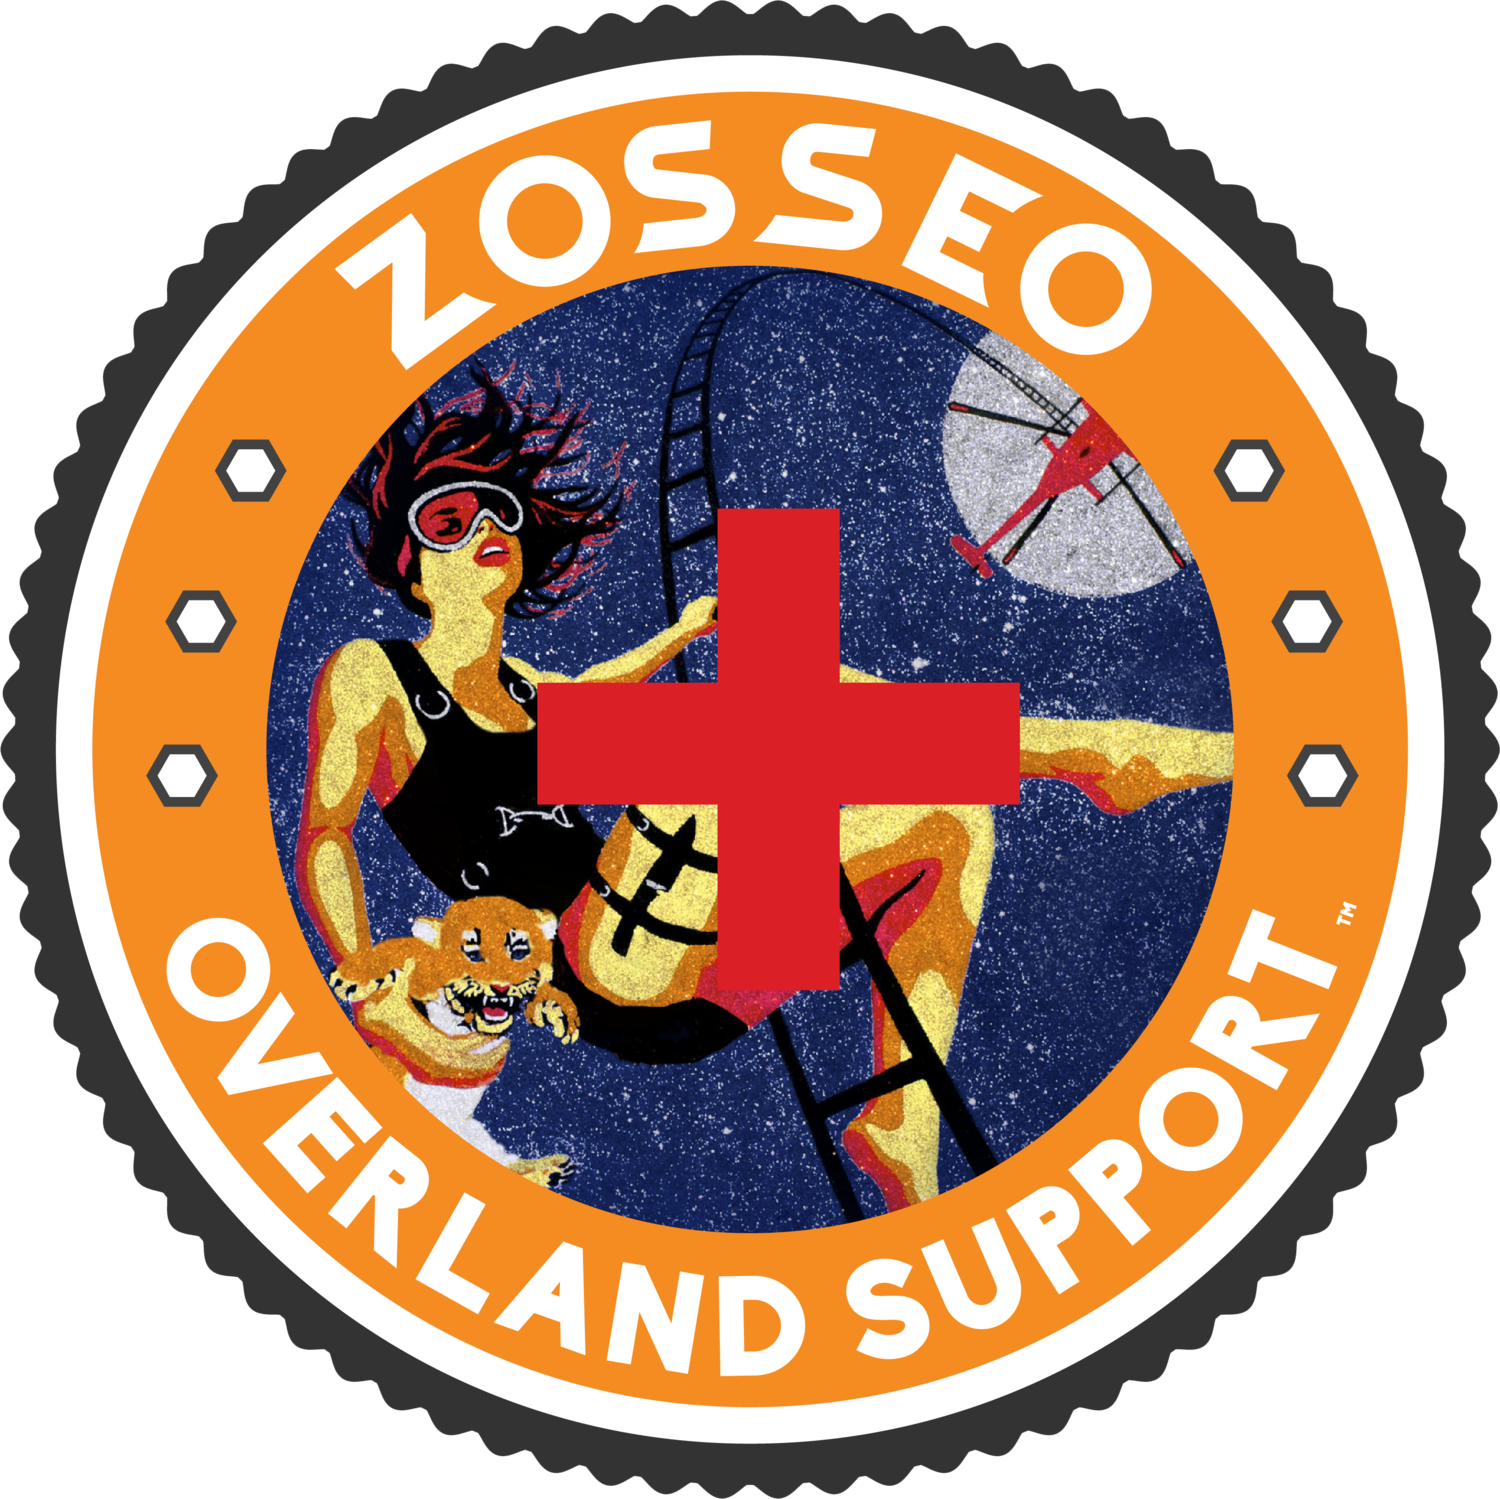 Zosseo Overland Support